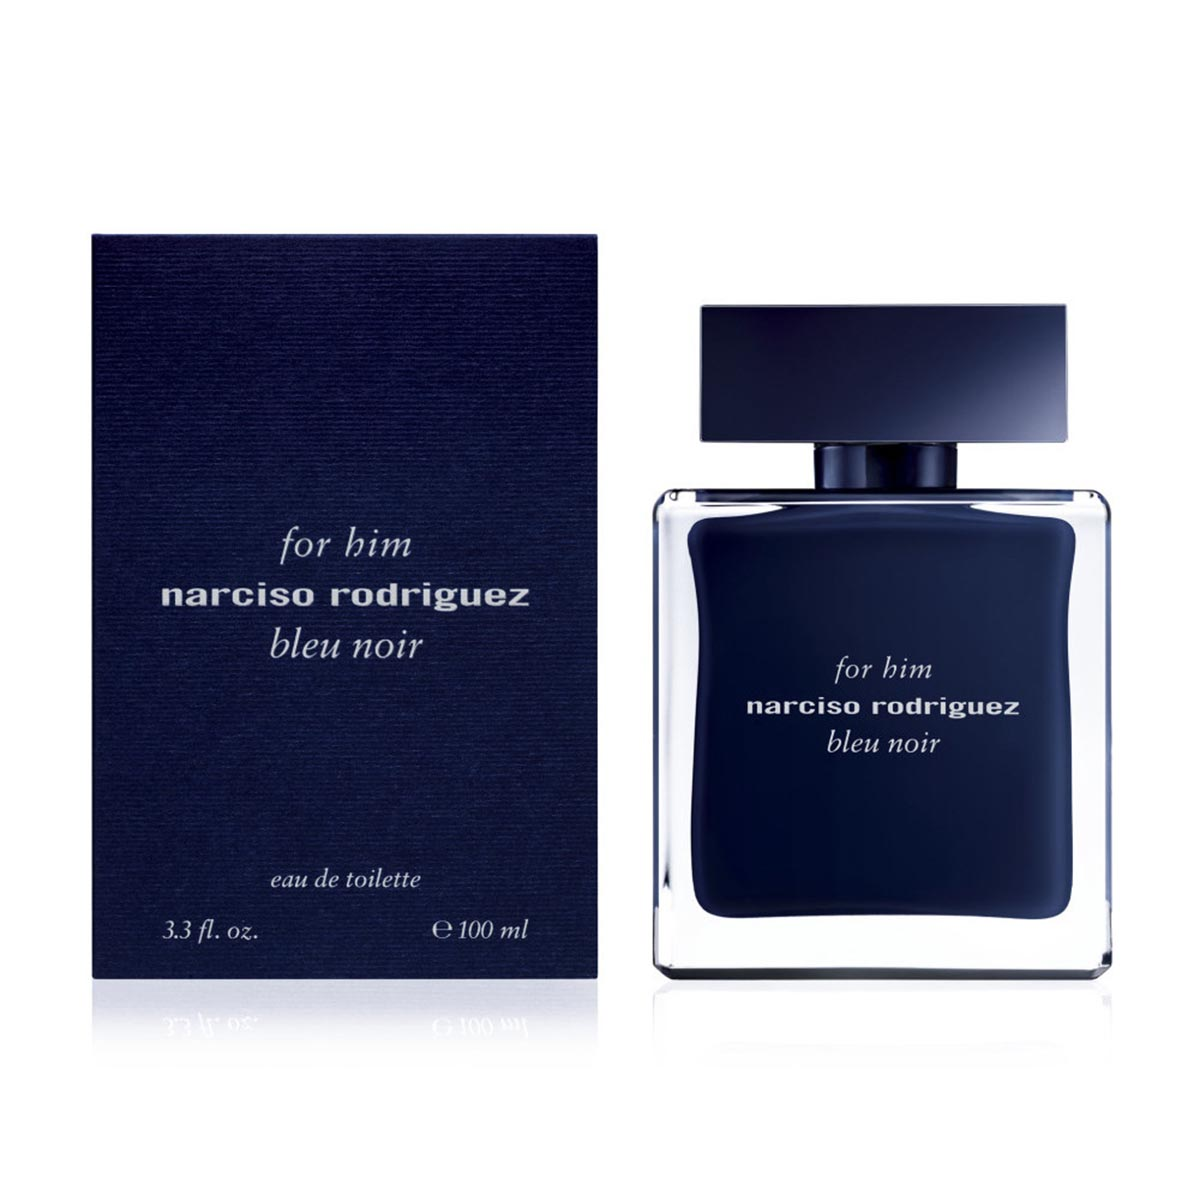 Narciso rodriguez for him bleu noir eai de toilette 100ml vaporizador